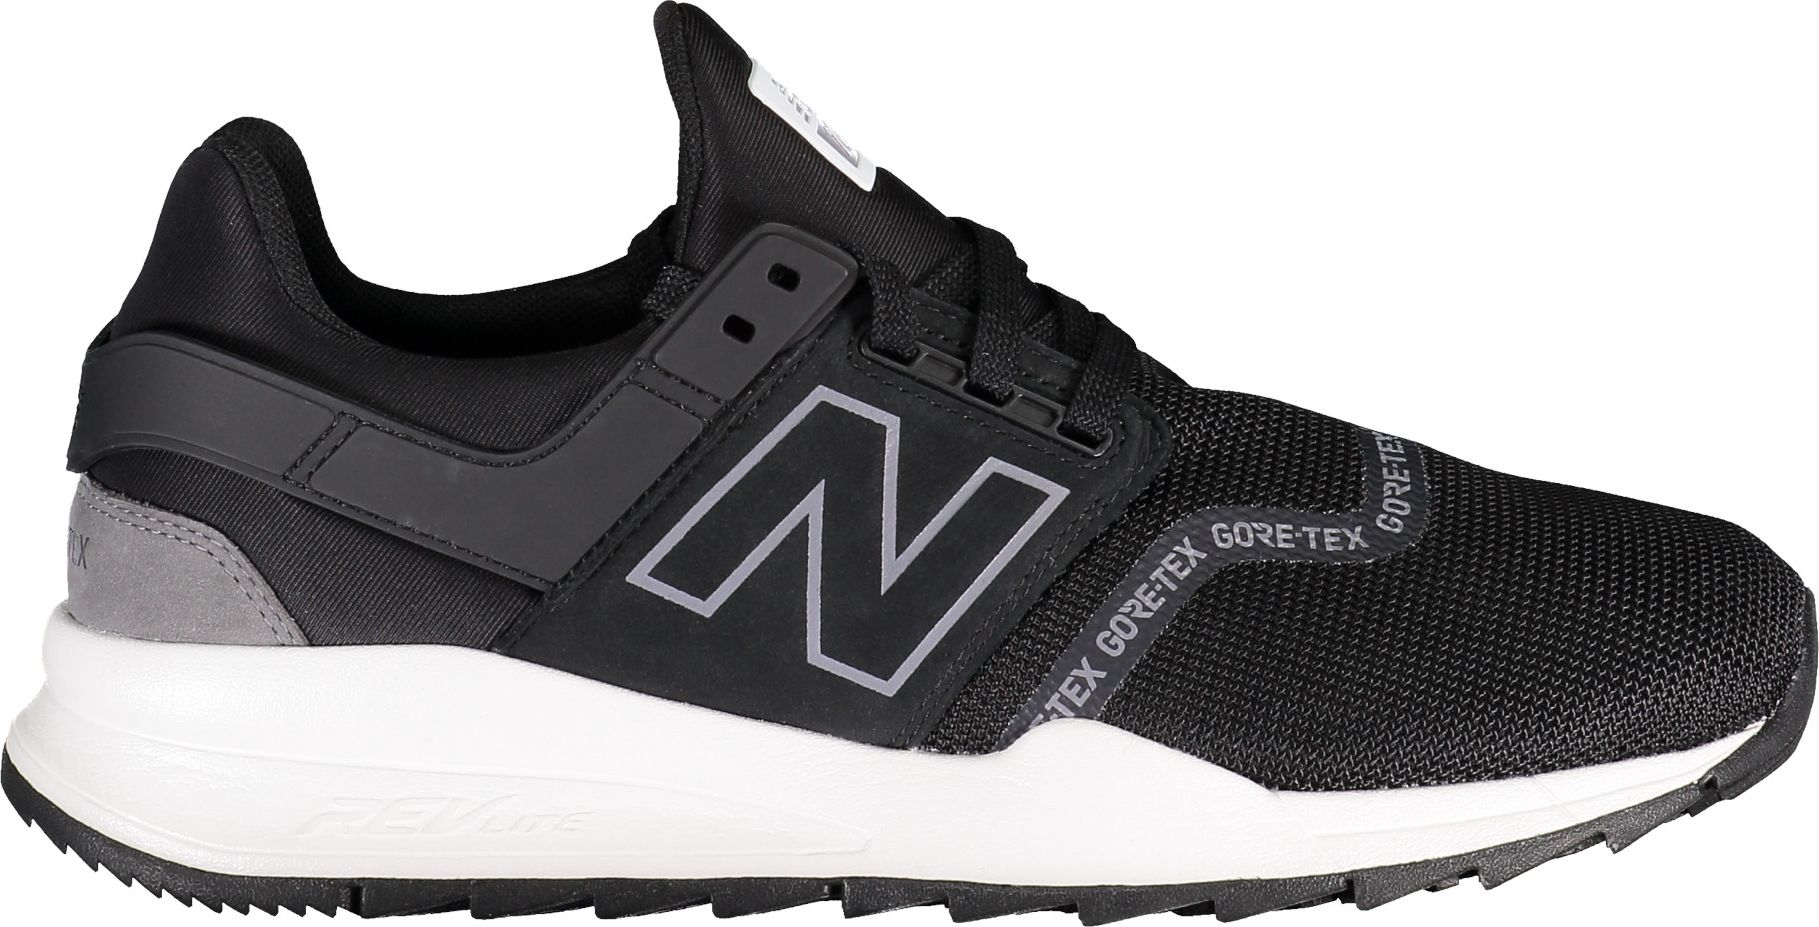 New Balance MS247 GTX | OPEN24.LT